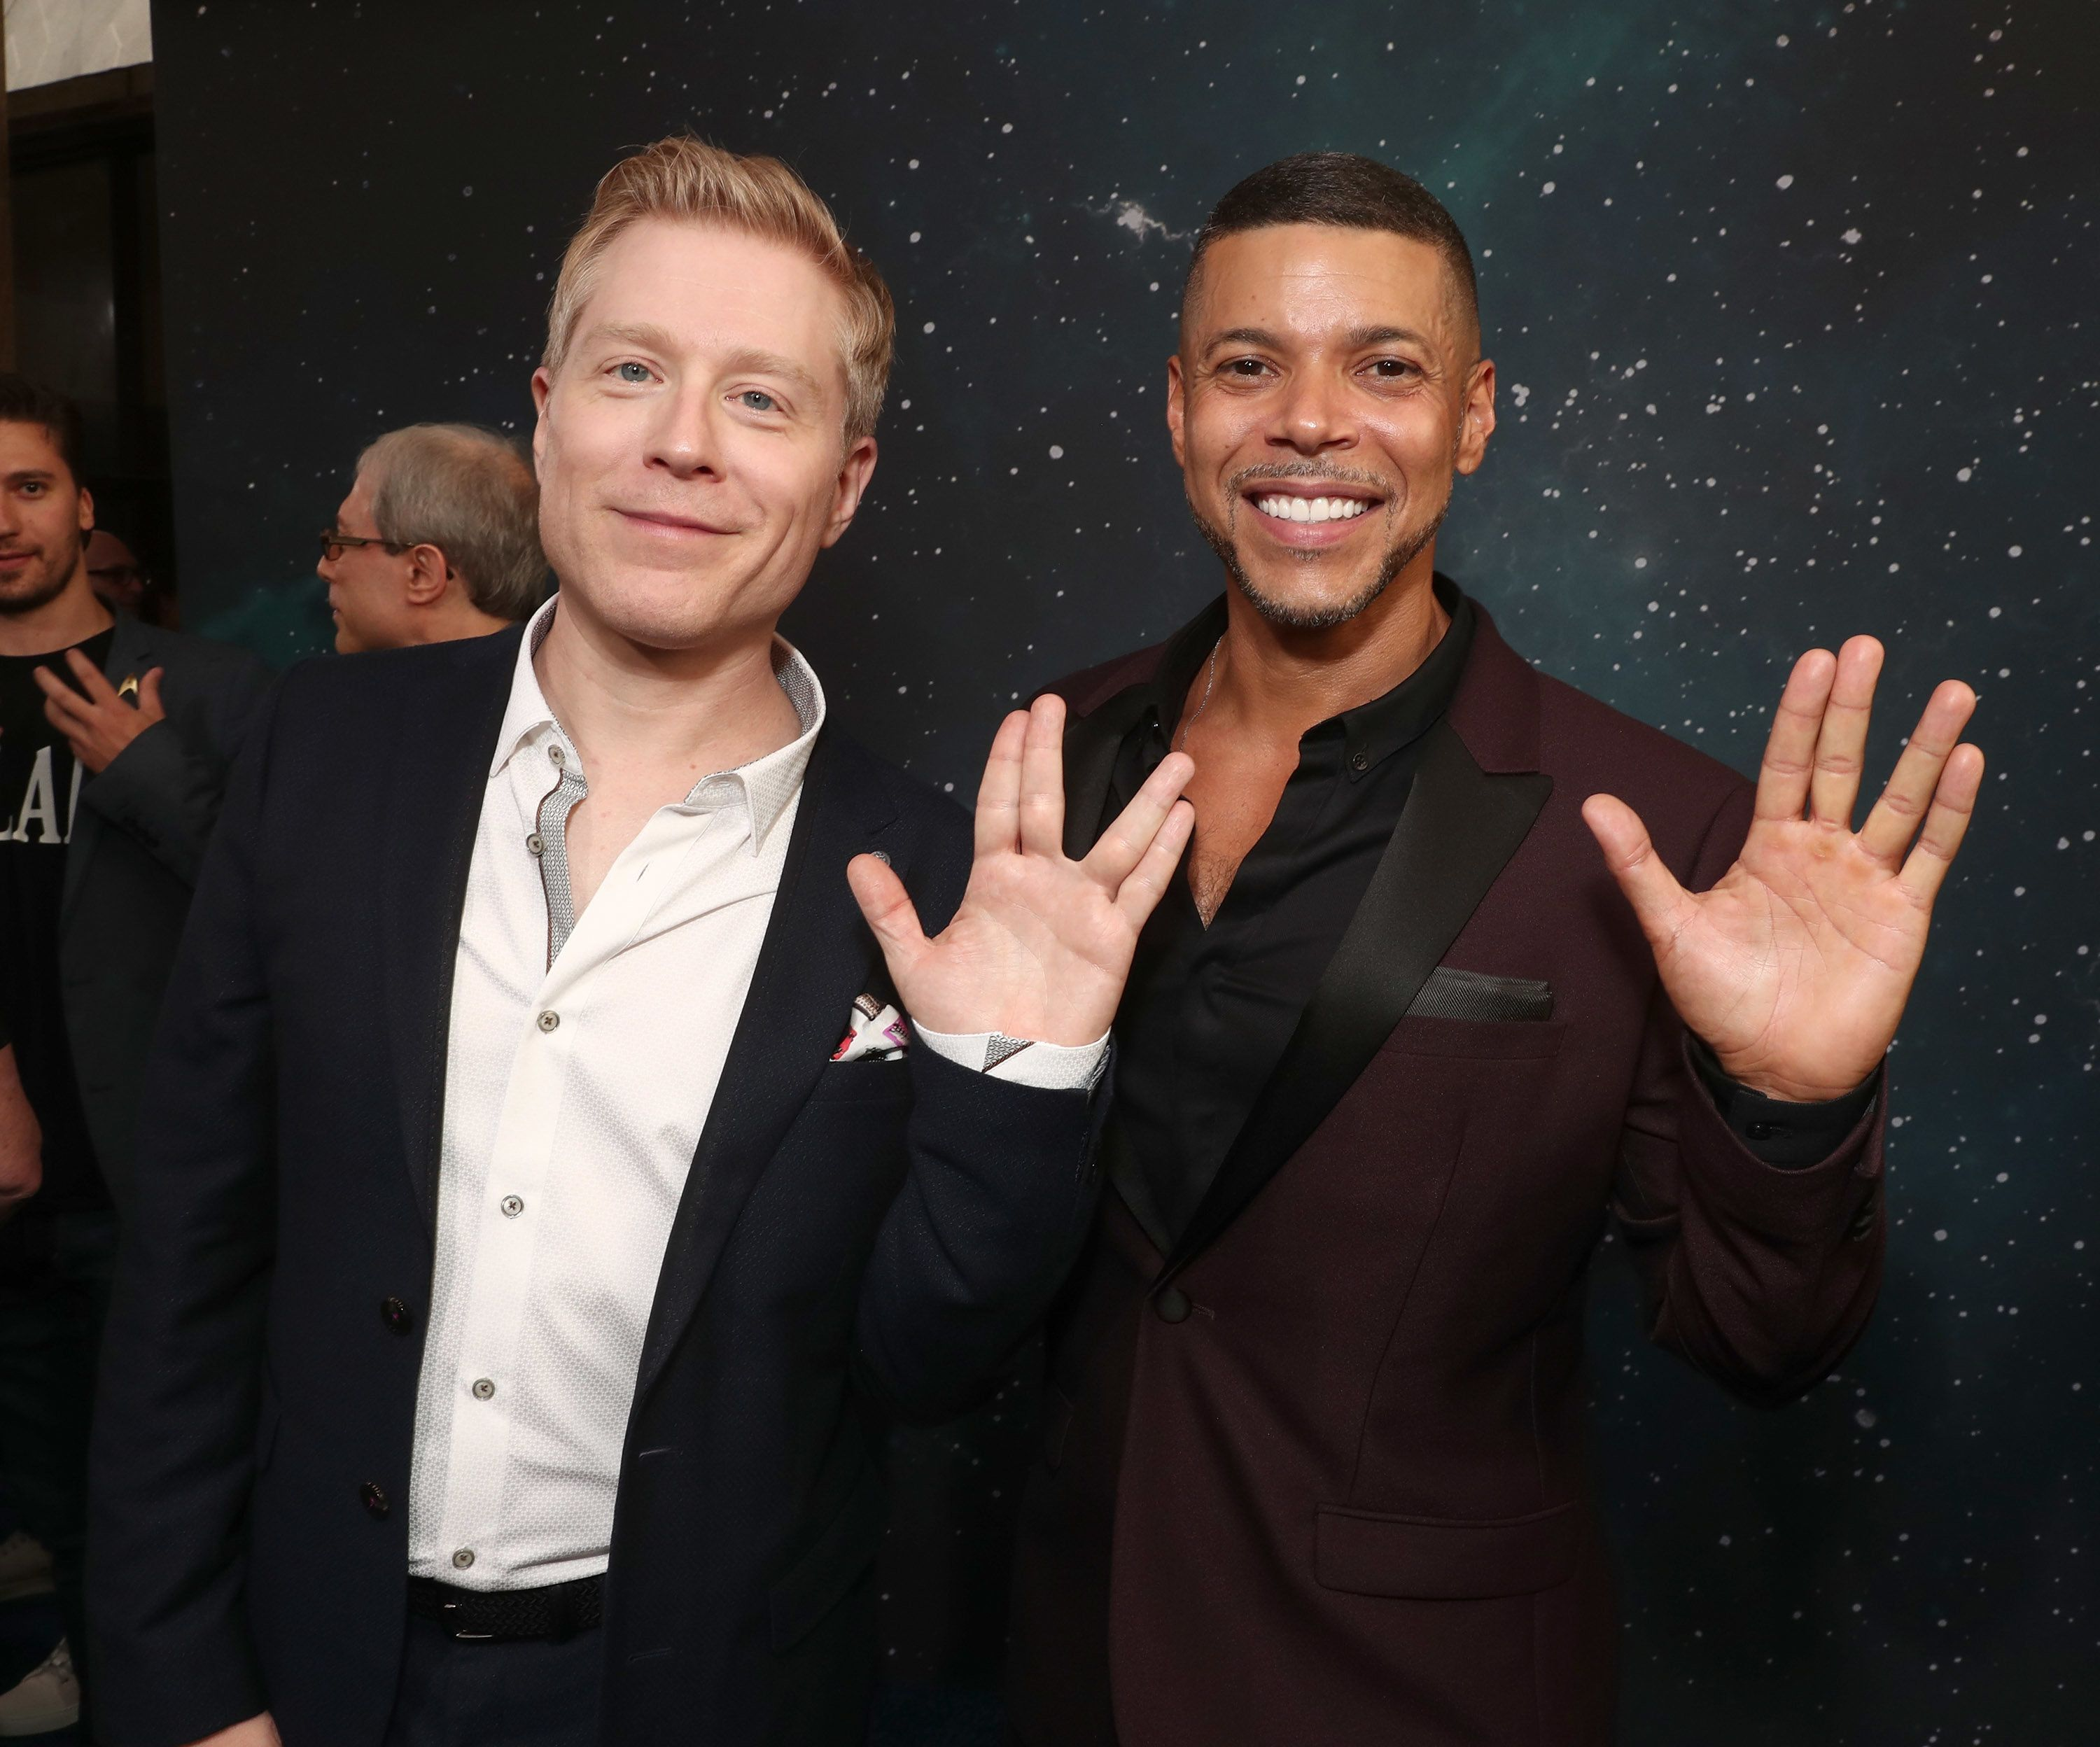 LOS ANGELES, CA - SEPTEMBER 19:  Anthony Rapp and Wilson Cruz attend the premiere of CBS's 'Star Trek: Discovery' at The Cinerama Dome on September 19, 2017 in Los Angeles, California.  (Photo by Todd Williamson/Getty Images)